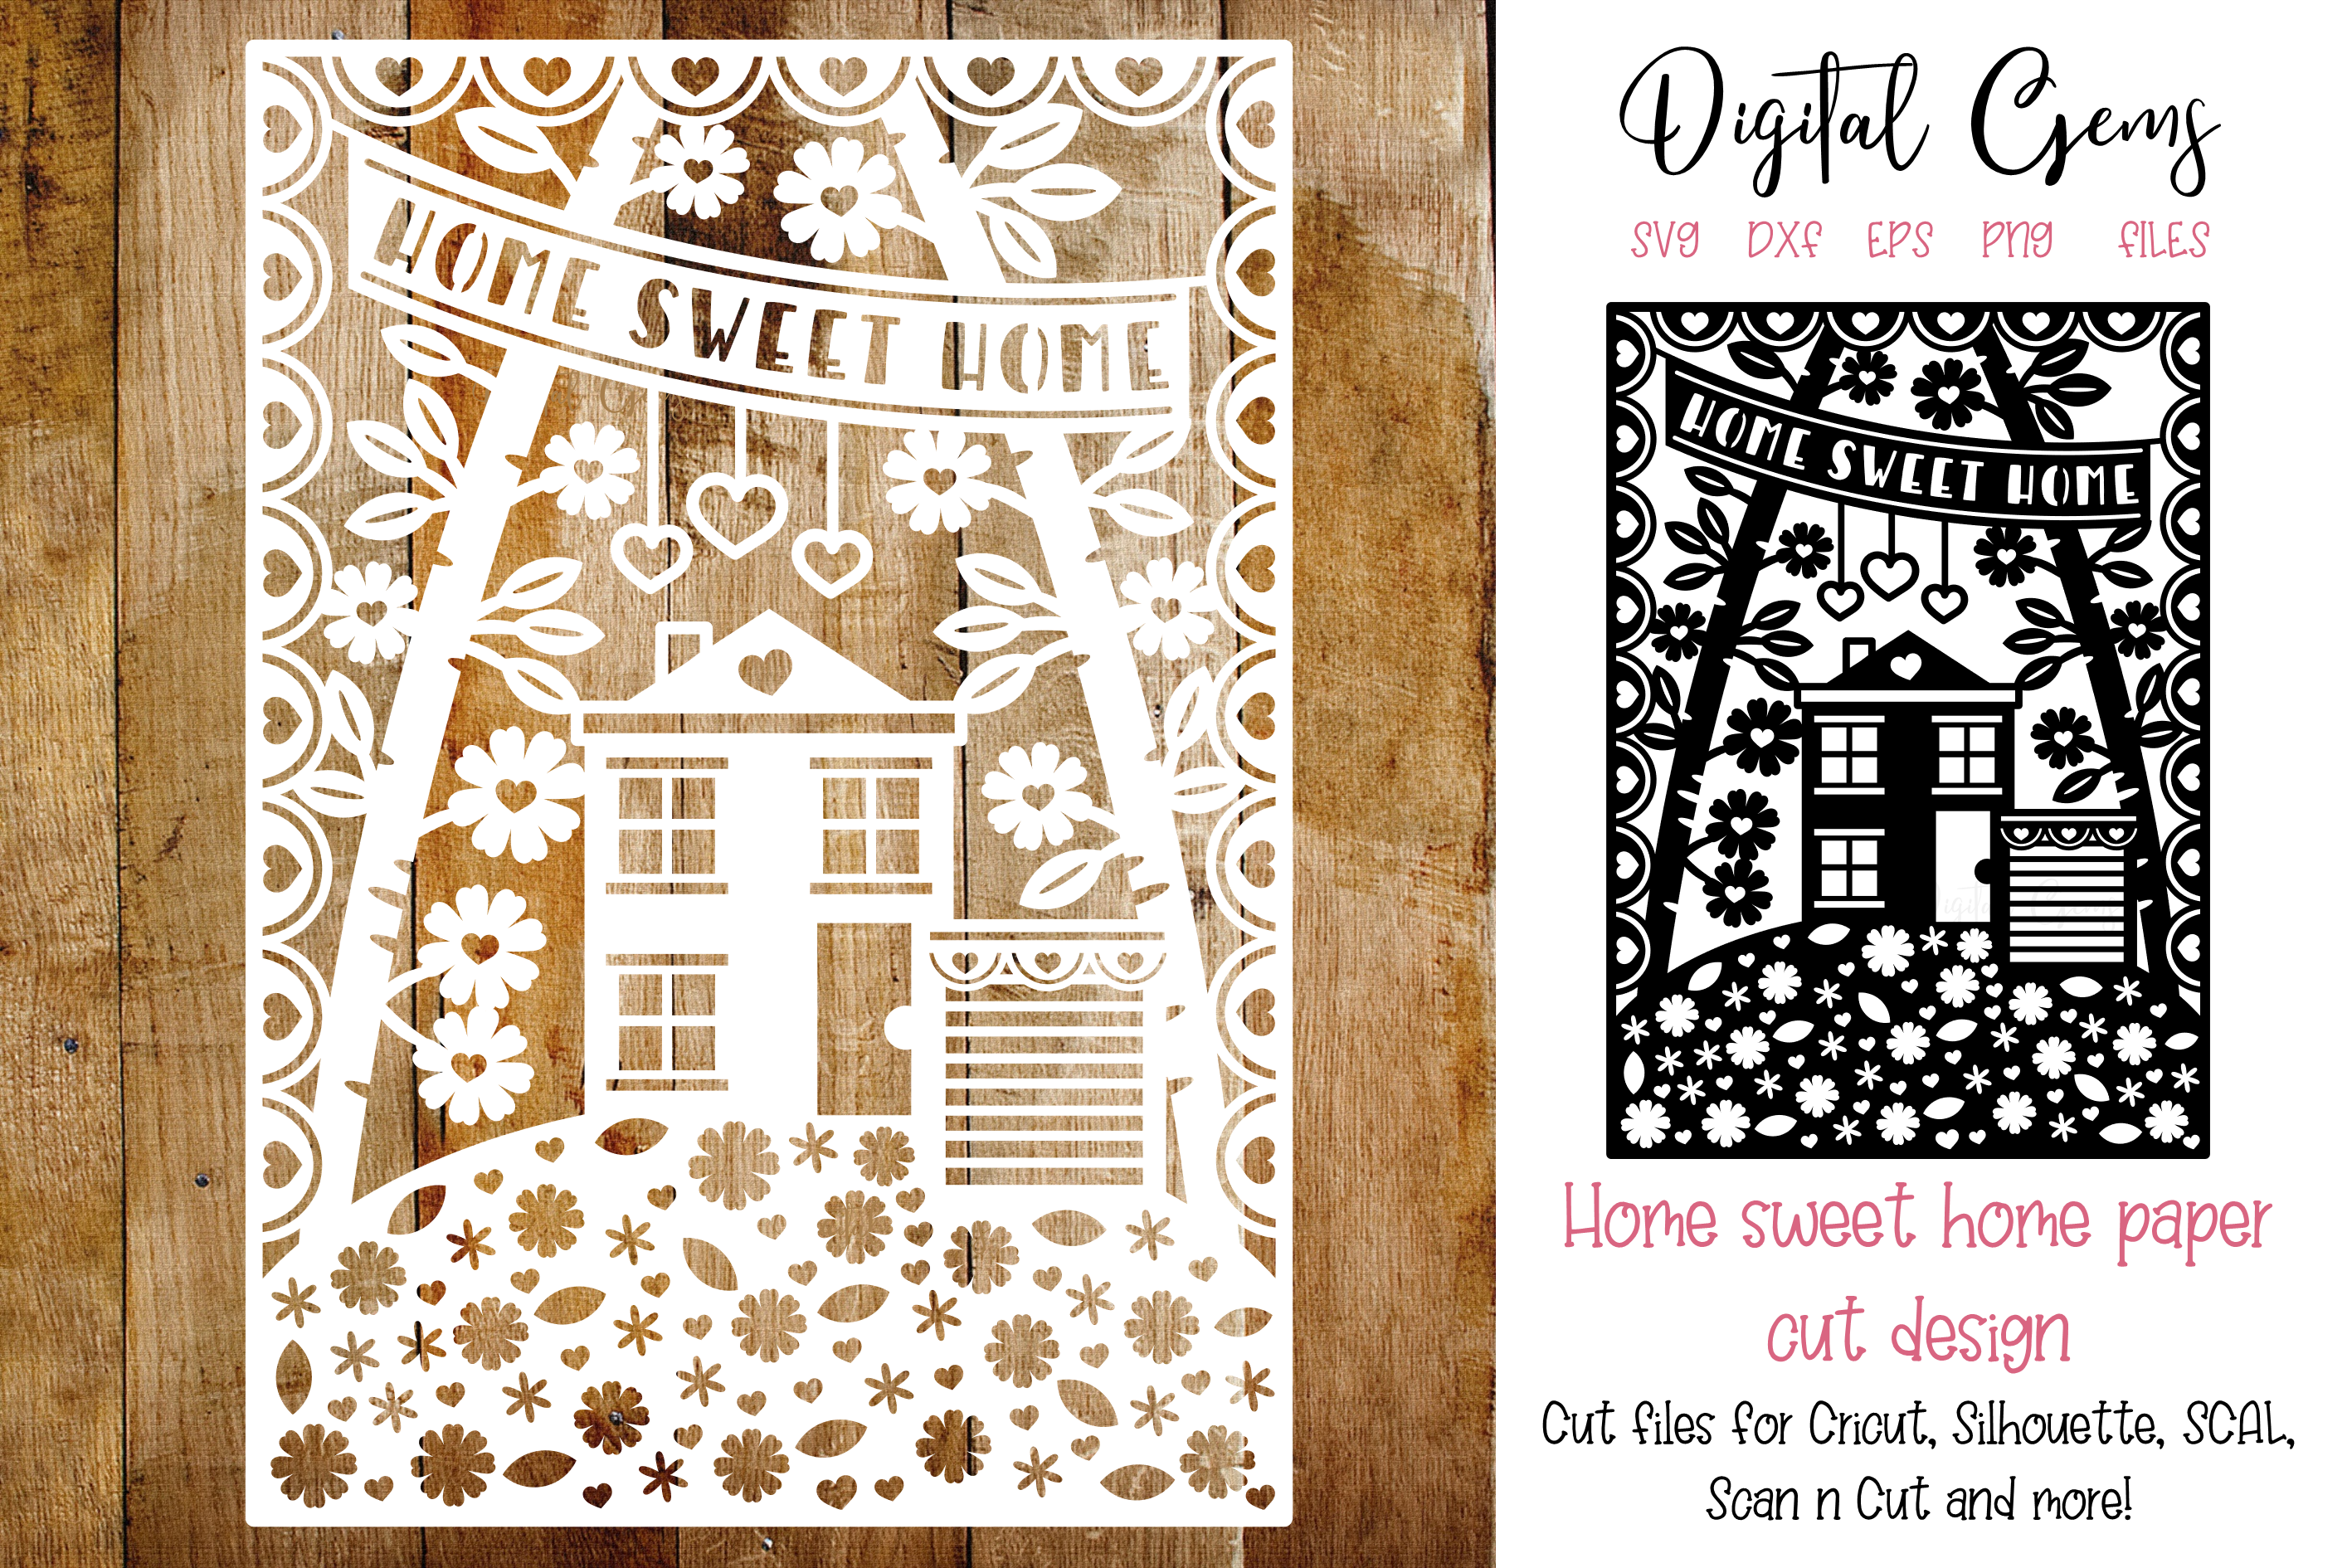 Download Free Home Sweet Home Paper Cut Design Graphic By Digital Gems for Cricut Explore, Silhouette and other cutting machines.